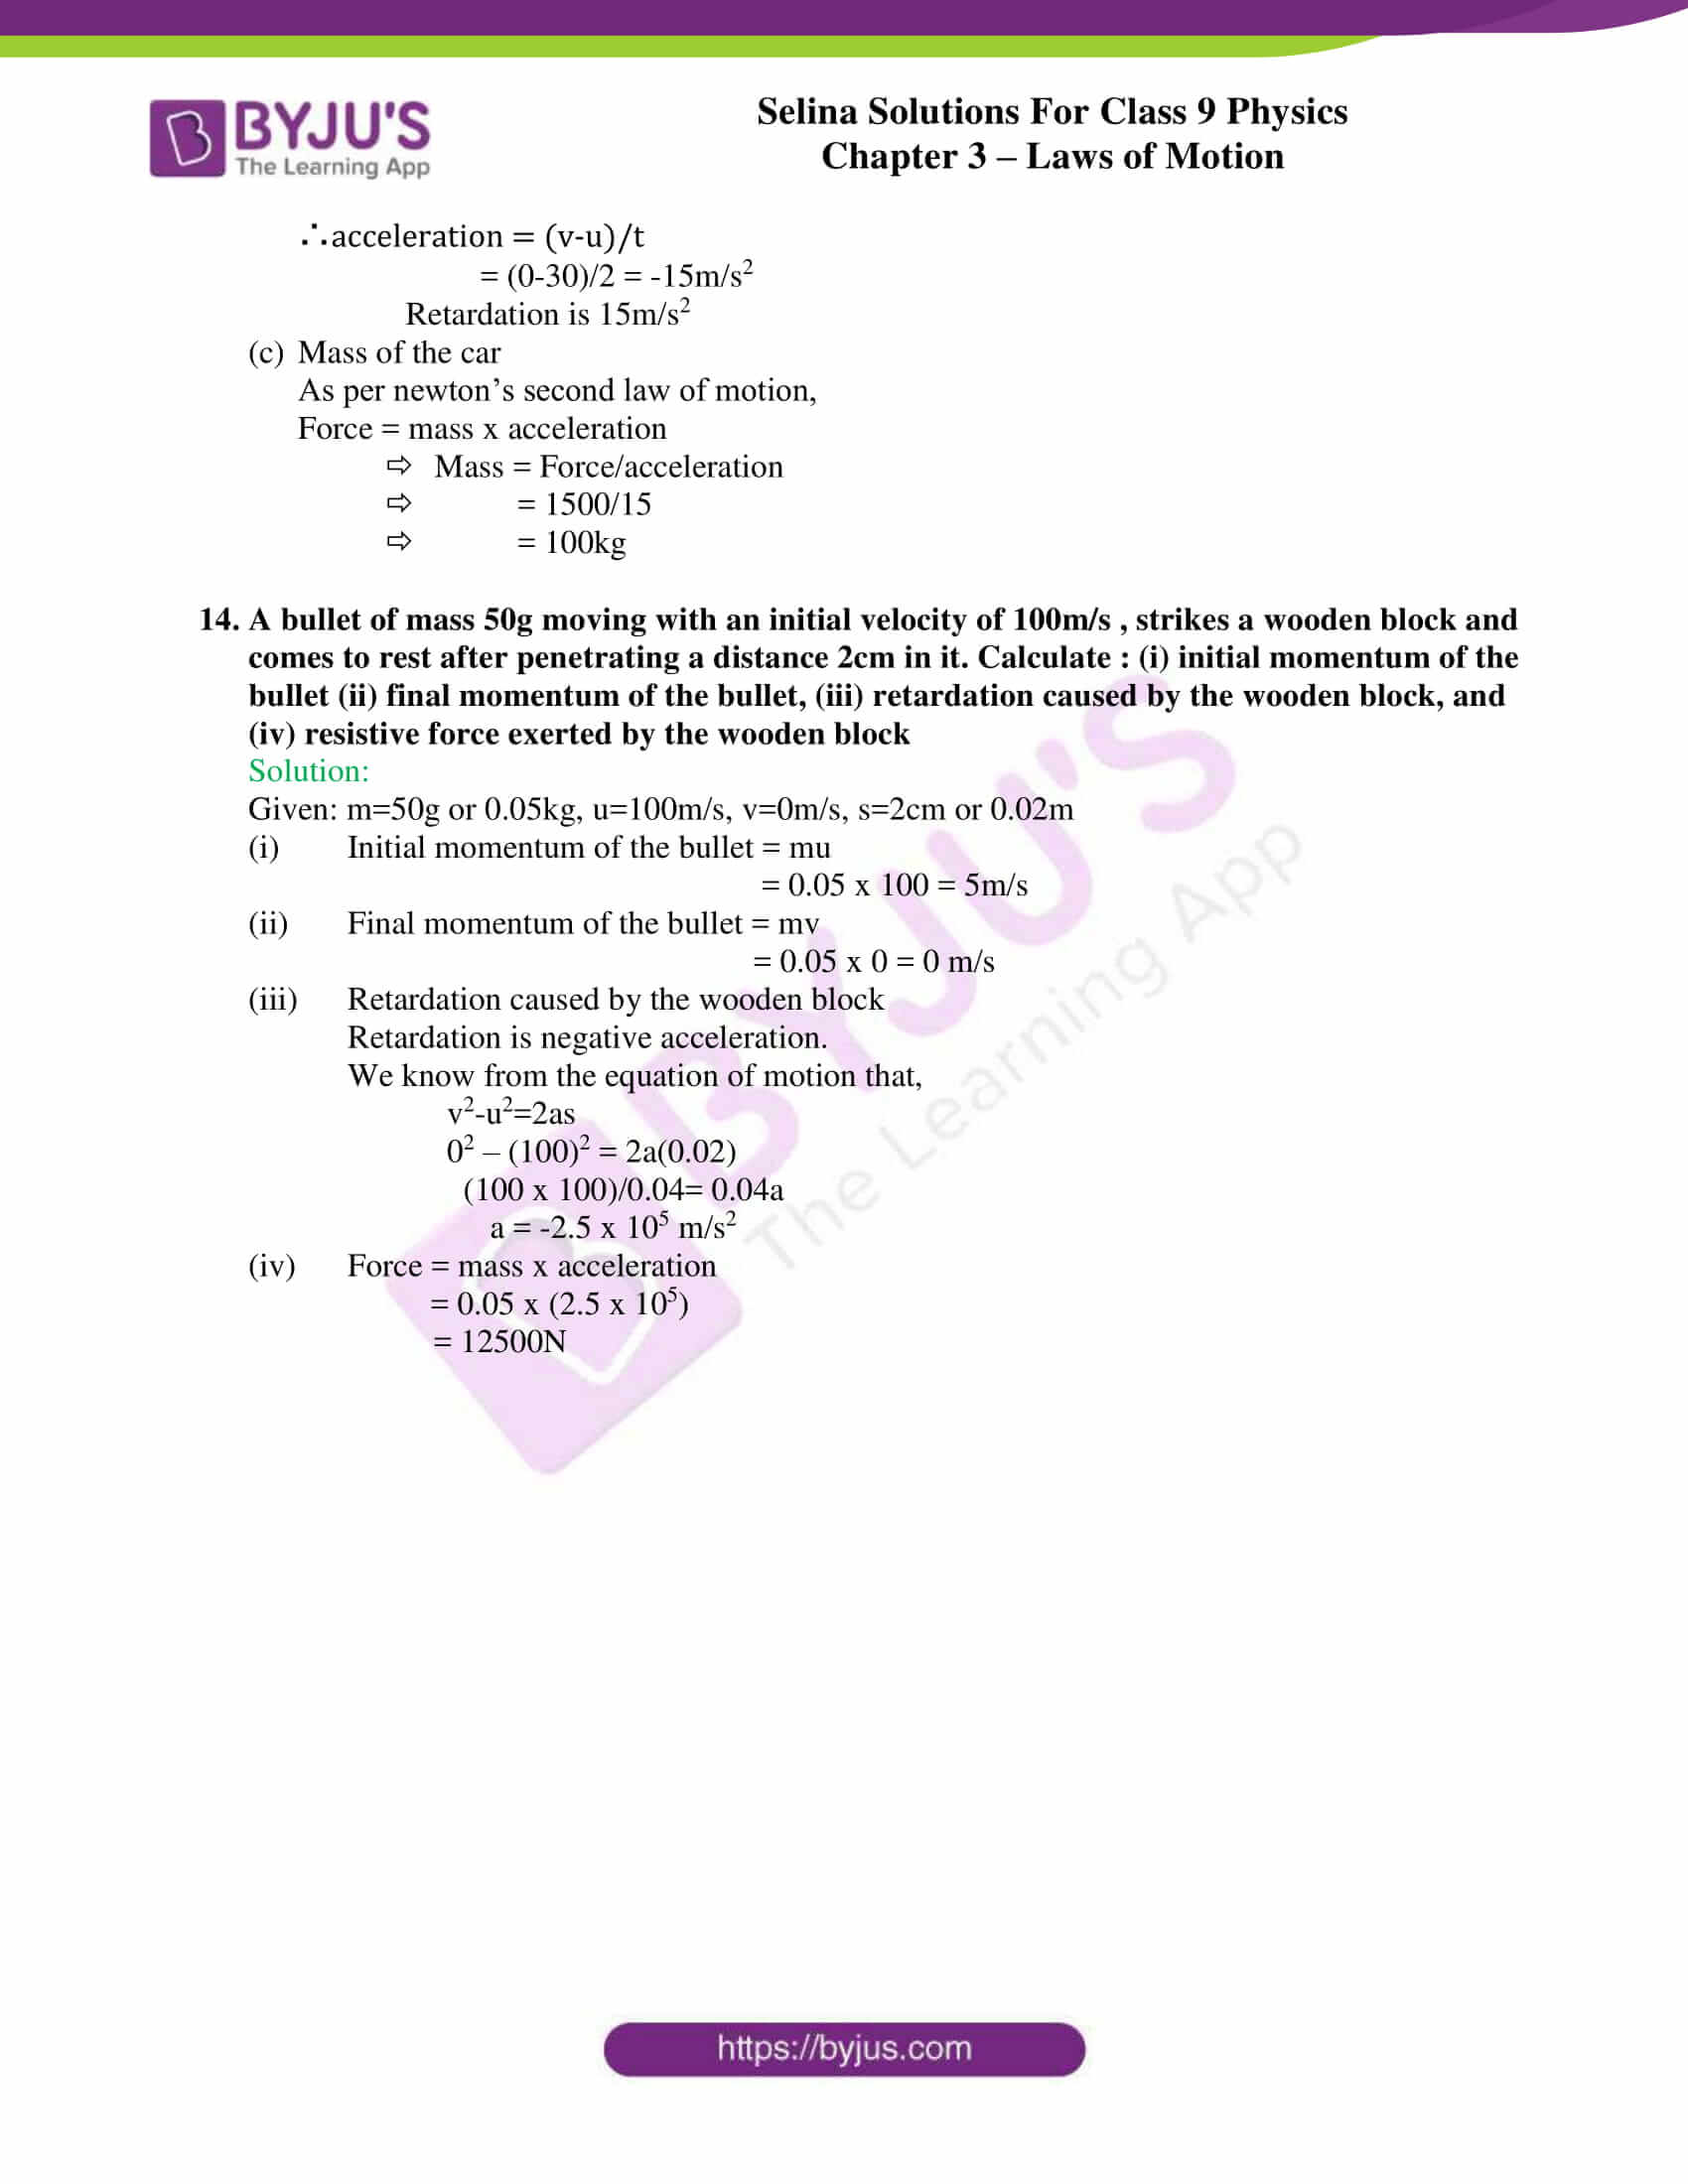 selina solutions class 9 physics chapter 3 Laws of Motion part 20